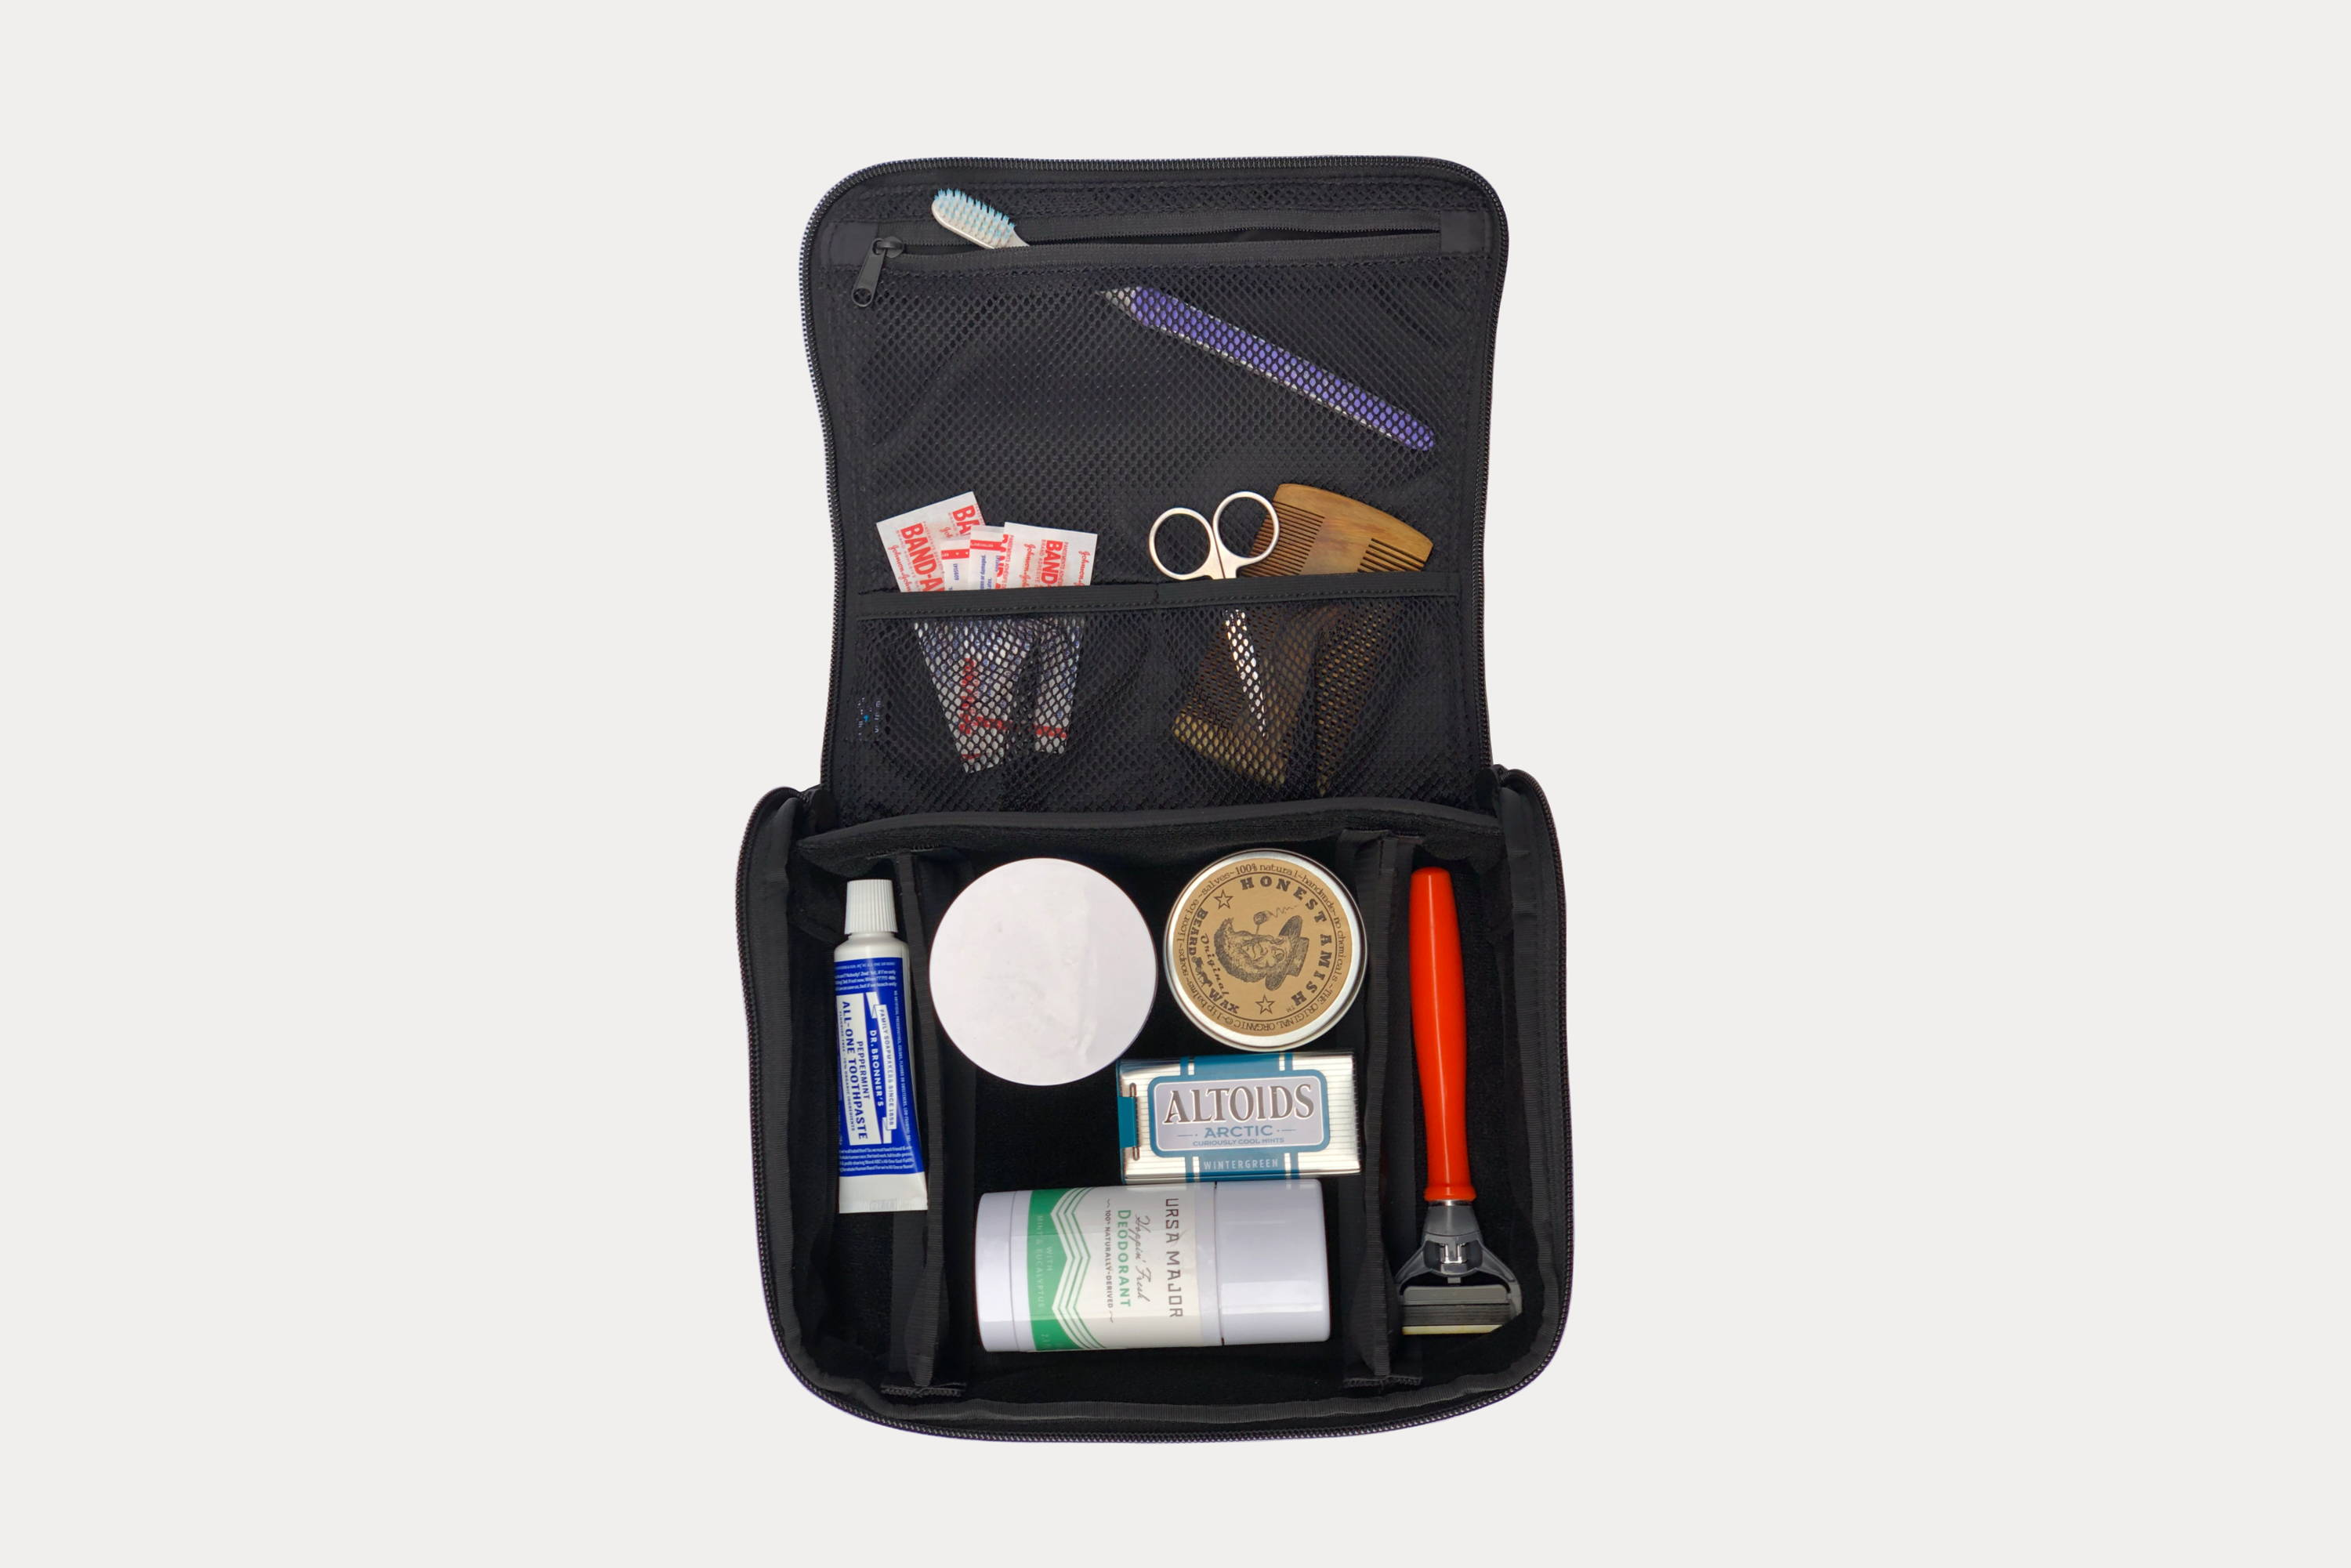 Minaal Toolcase XL - A tech or dopp kit for travelers and creatives.